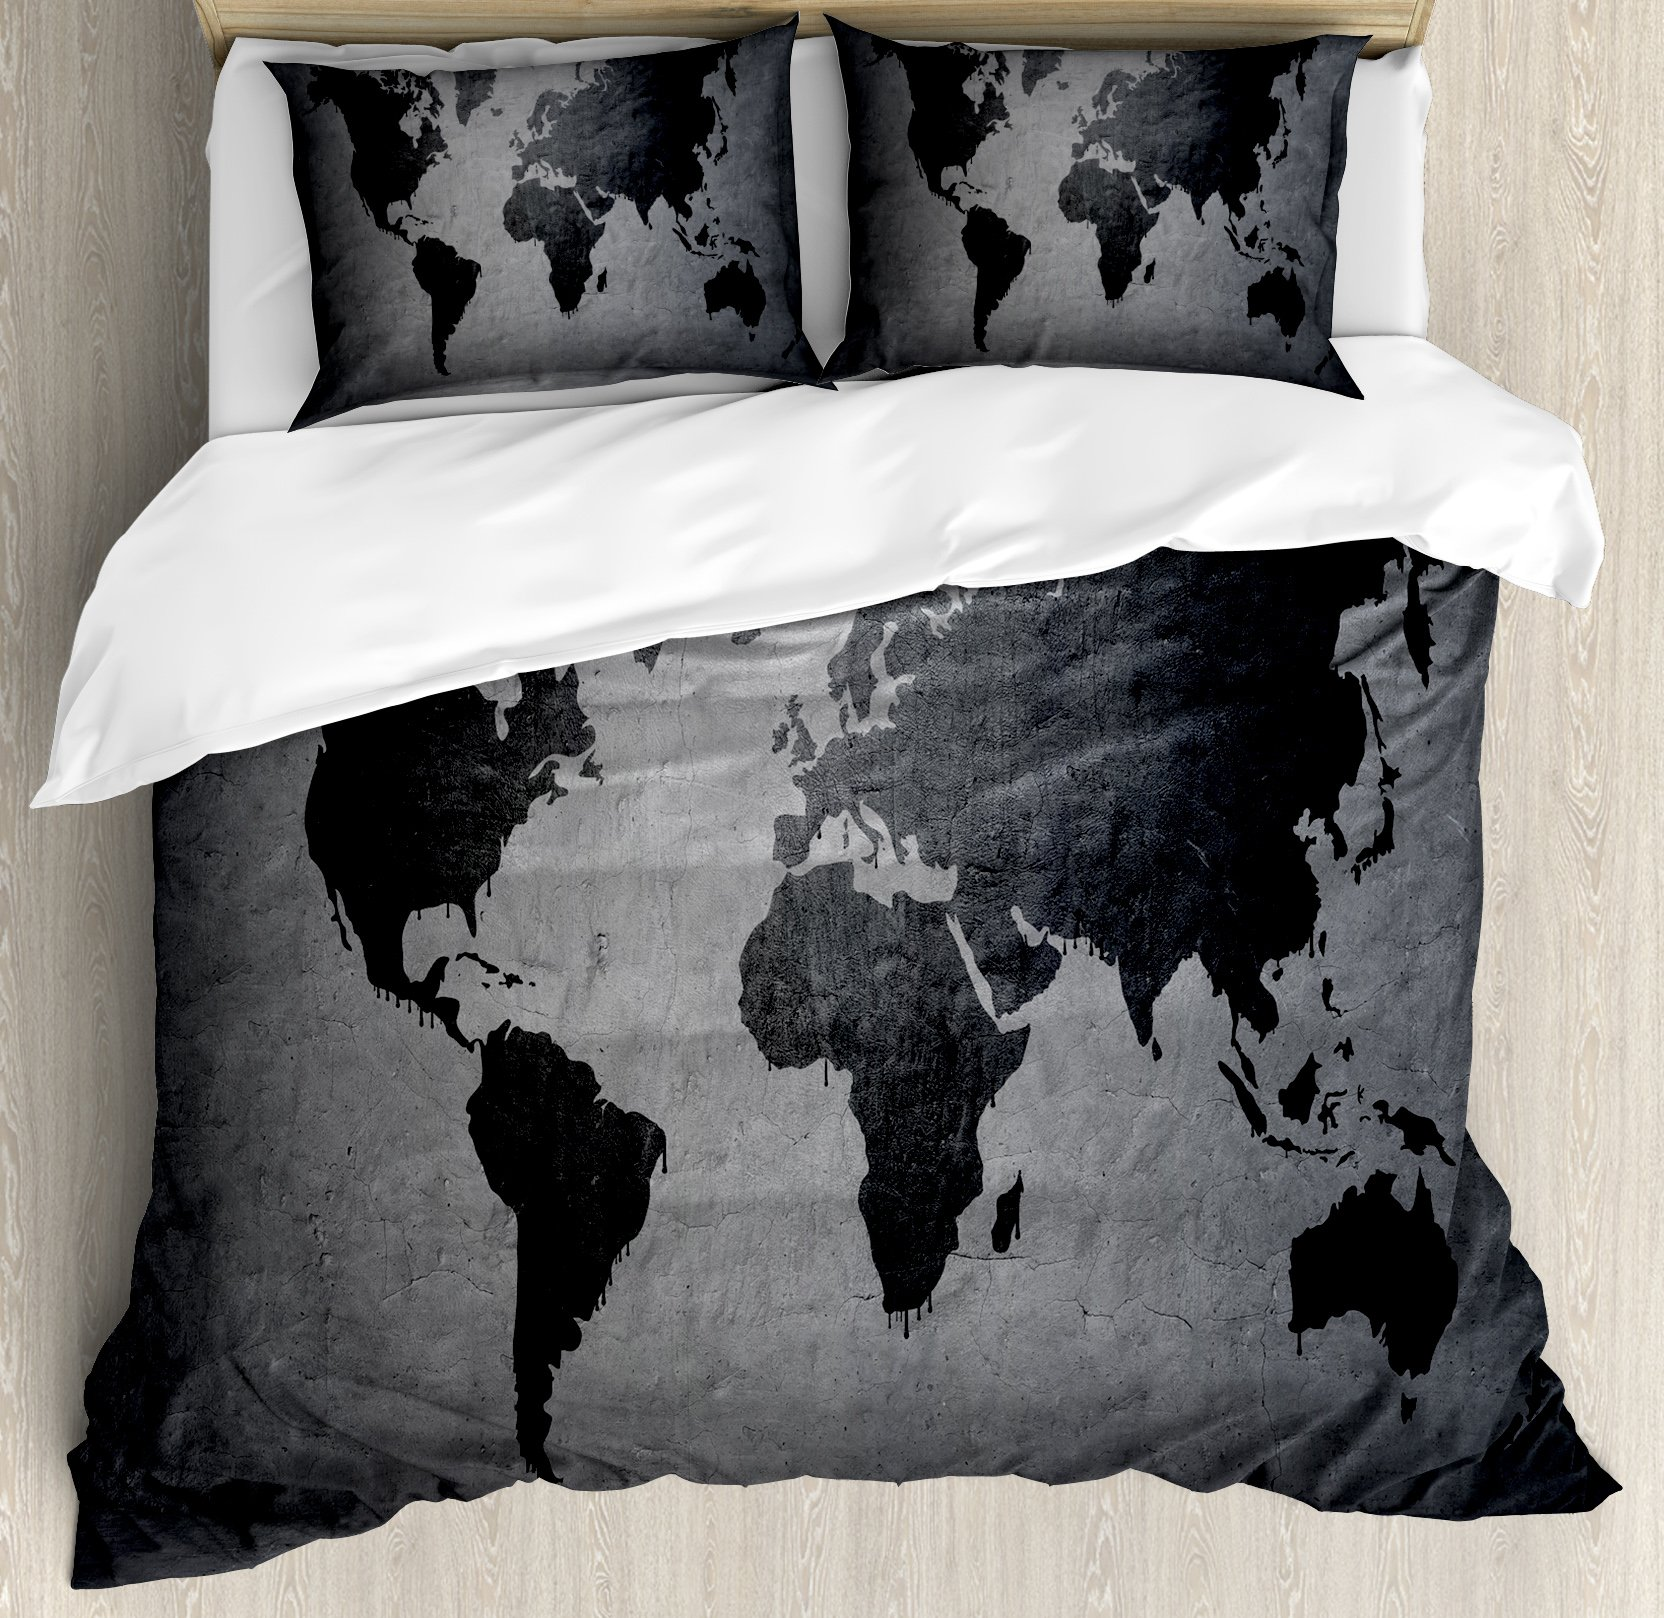 Dark Grey Duvet Cover Set Queen Size by Ambesonne, Black Colored World Map on Concrete Wall Image Urban Structure Grungy Rough Look, Decorative 3 Piece Bedding Set with 2 Pillow Shams, Grey Black